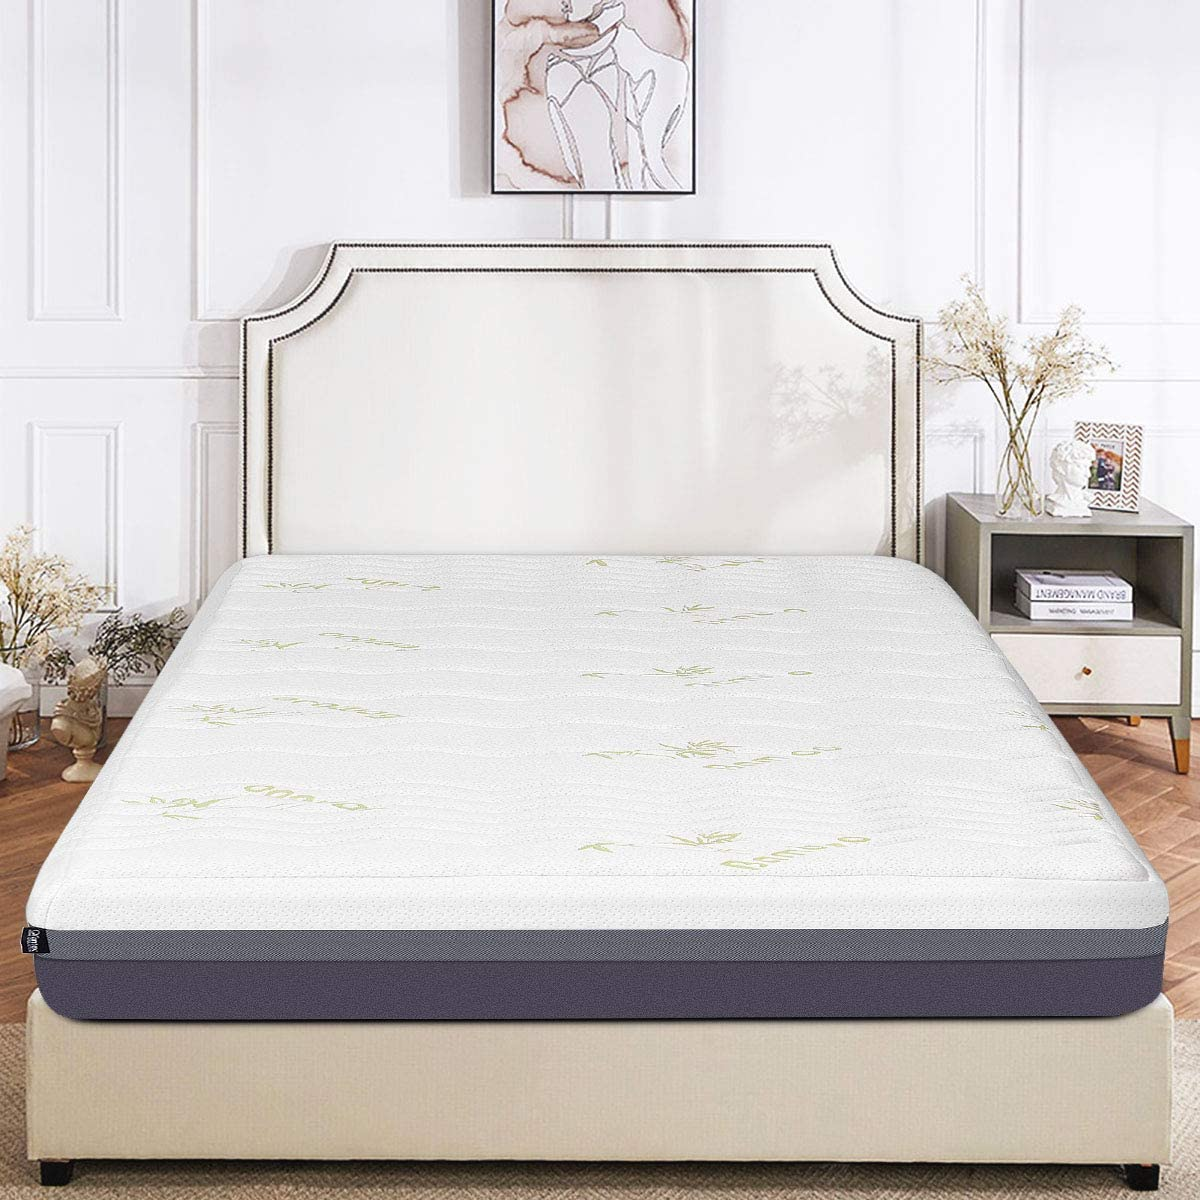 Giantex Mattress Memory Foam Bed Mattress Zipped Washable Bamboo Cover 10